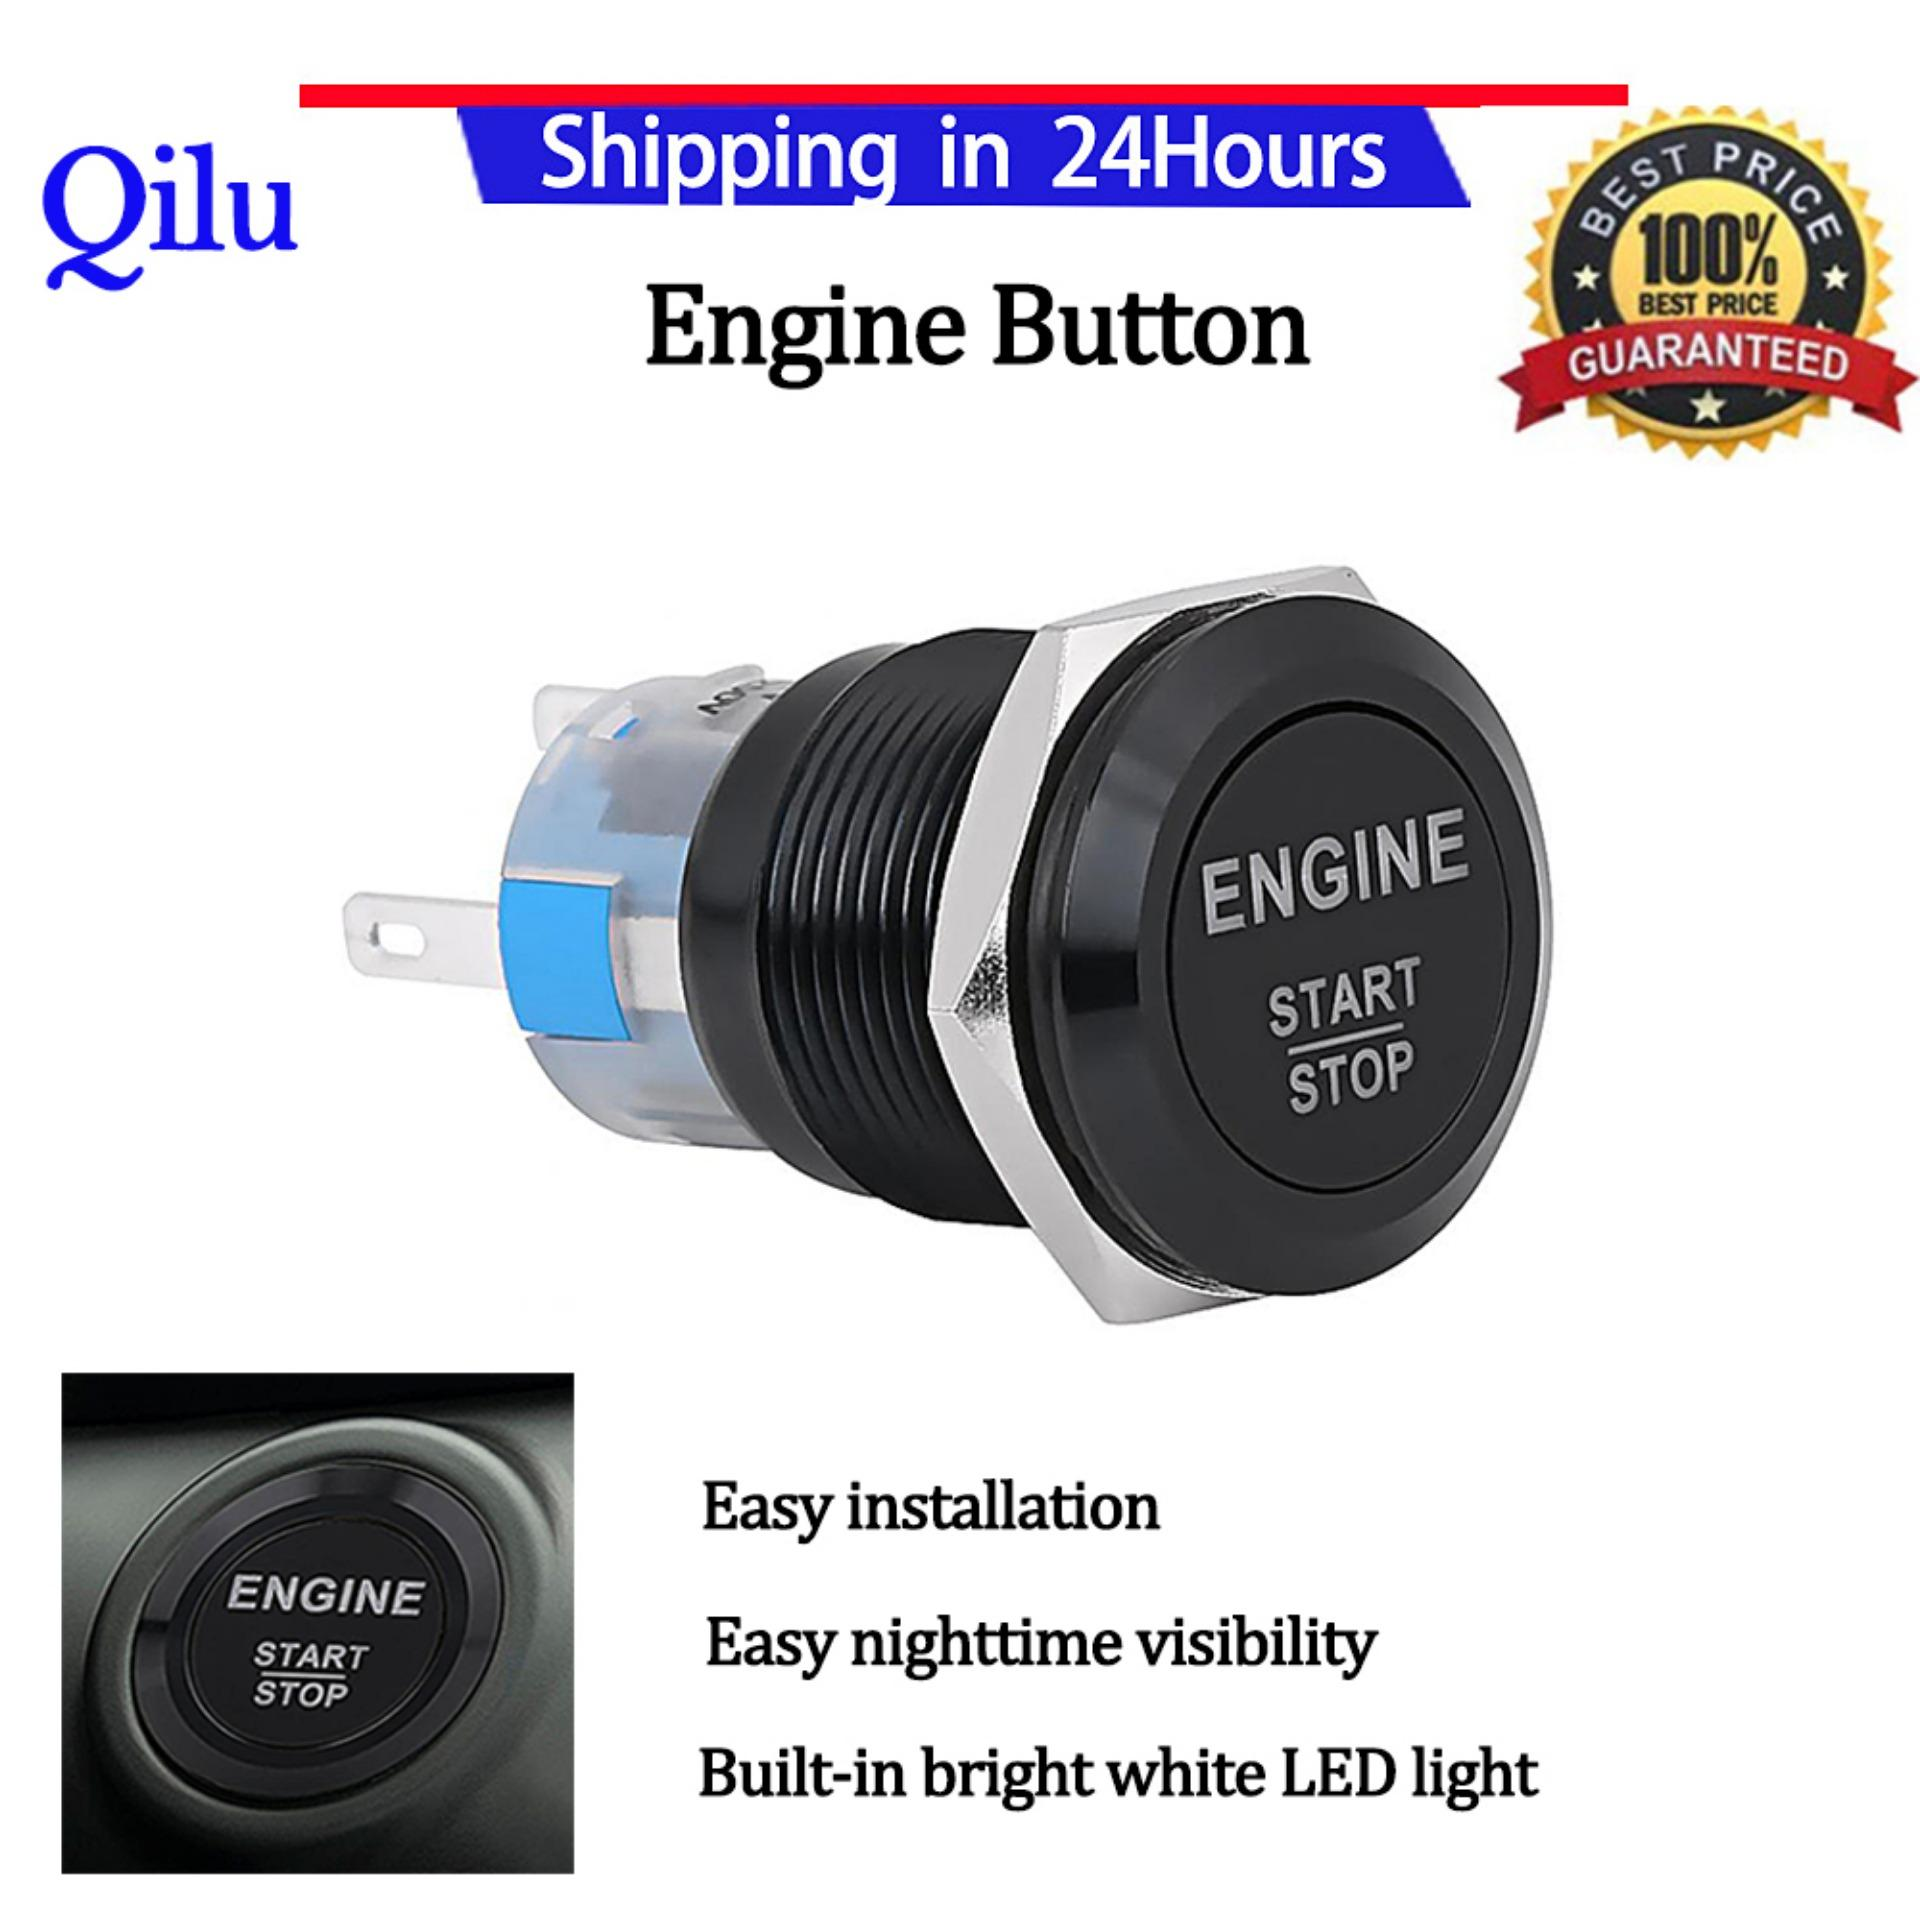 Alarm System For Sale Car Accessories Online Brands Two Way Lighting Diagram Engine Start Switch 12v White Led Stop Push Button Black Zinc